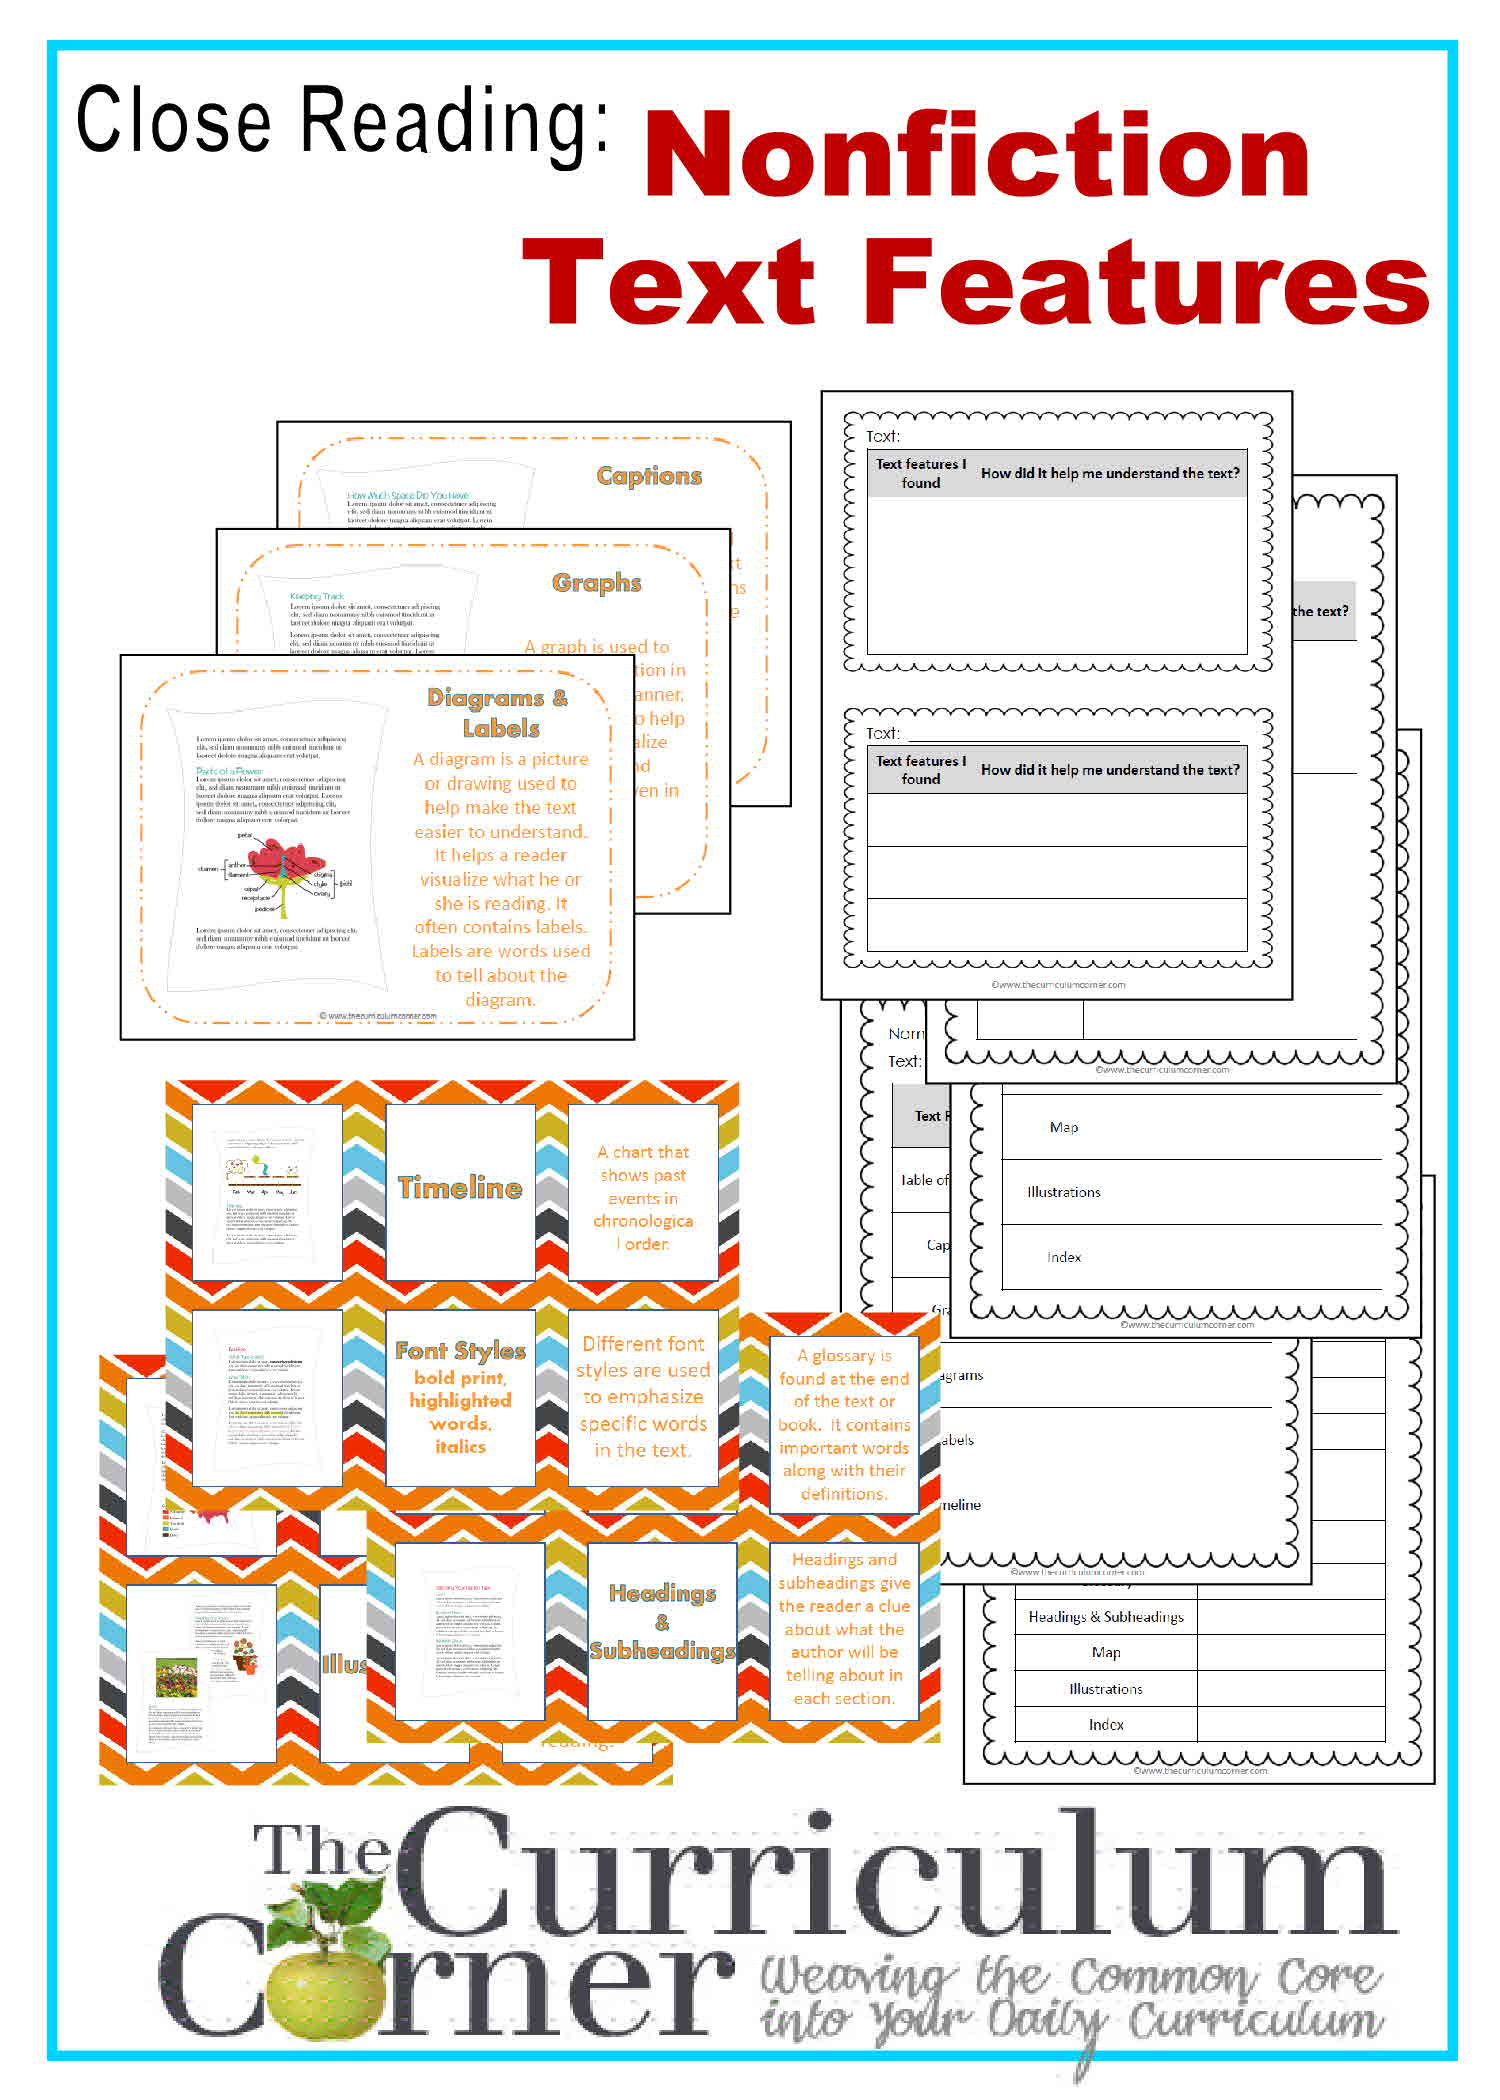 Close Reading Using Text Features